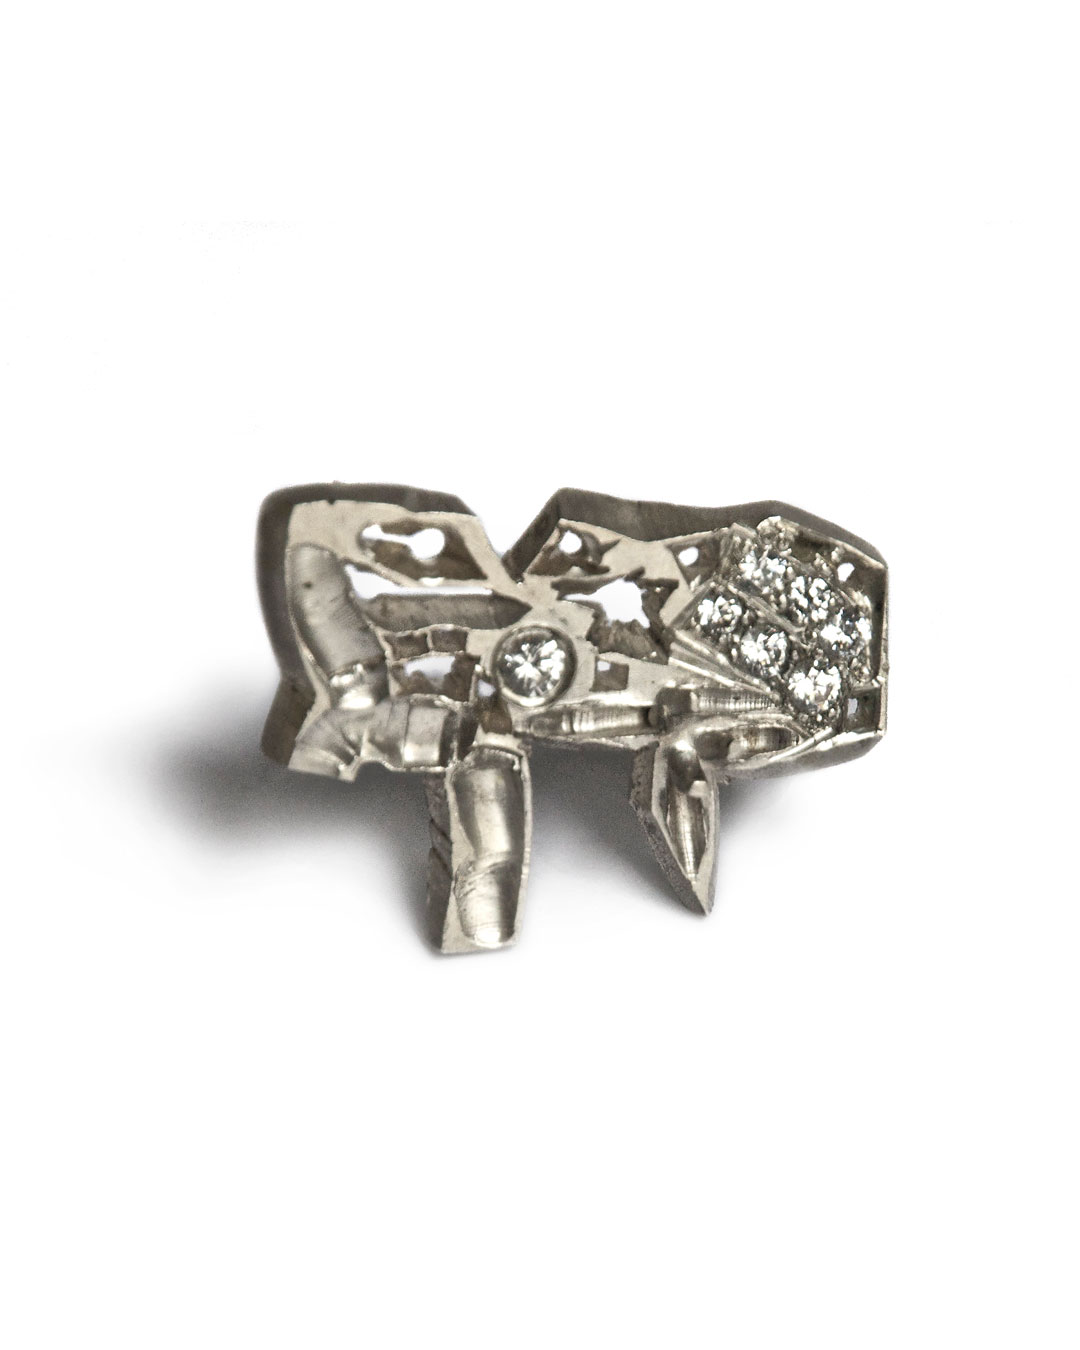 Rudolf Kocéa, Der Freund (The Friend), 2007, brooch; silver, zirconia, 25 x 34 x 6 mm, €1020